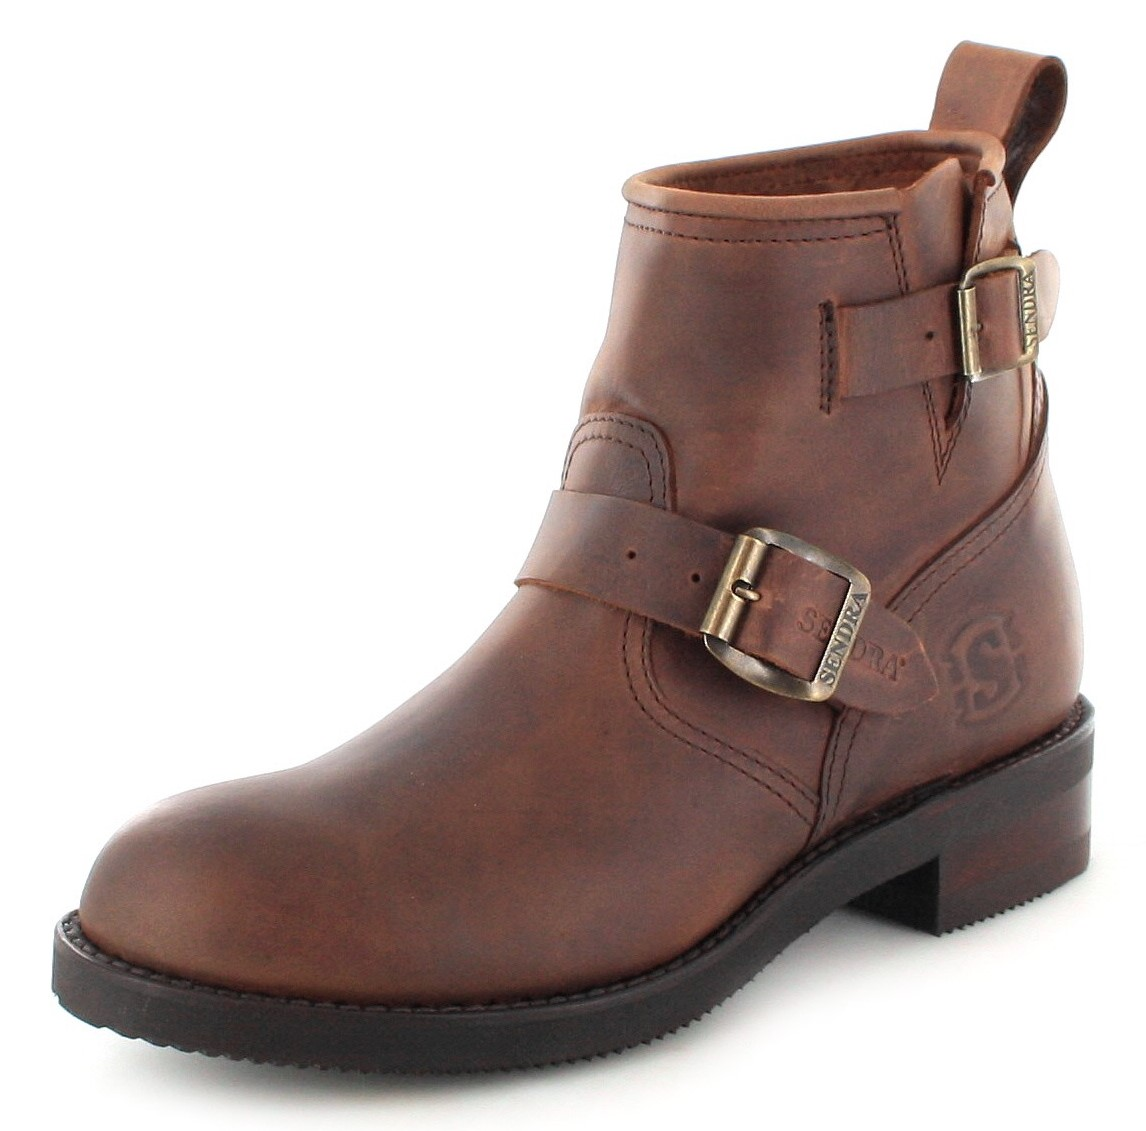 Sendra Boots 2976 Sprinter Engineer ankle boot with no steel toecap- Brown